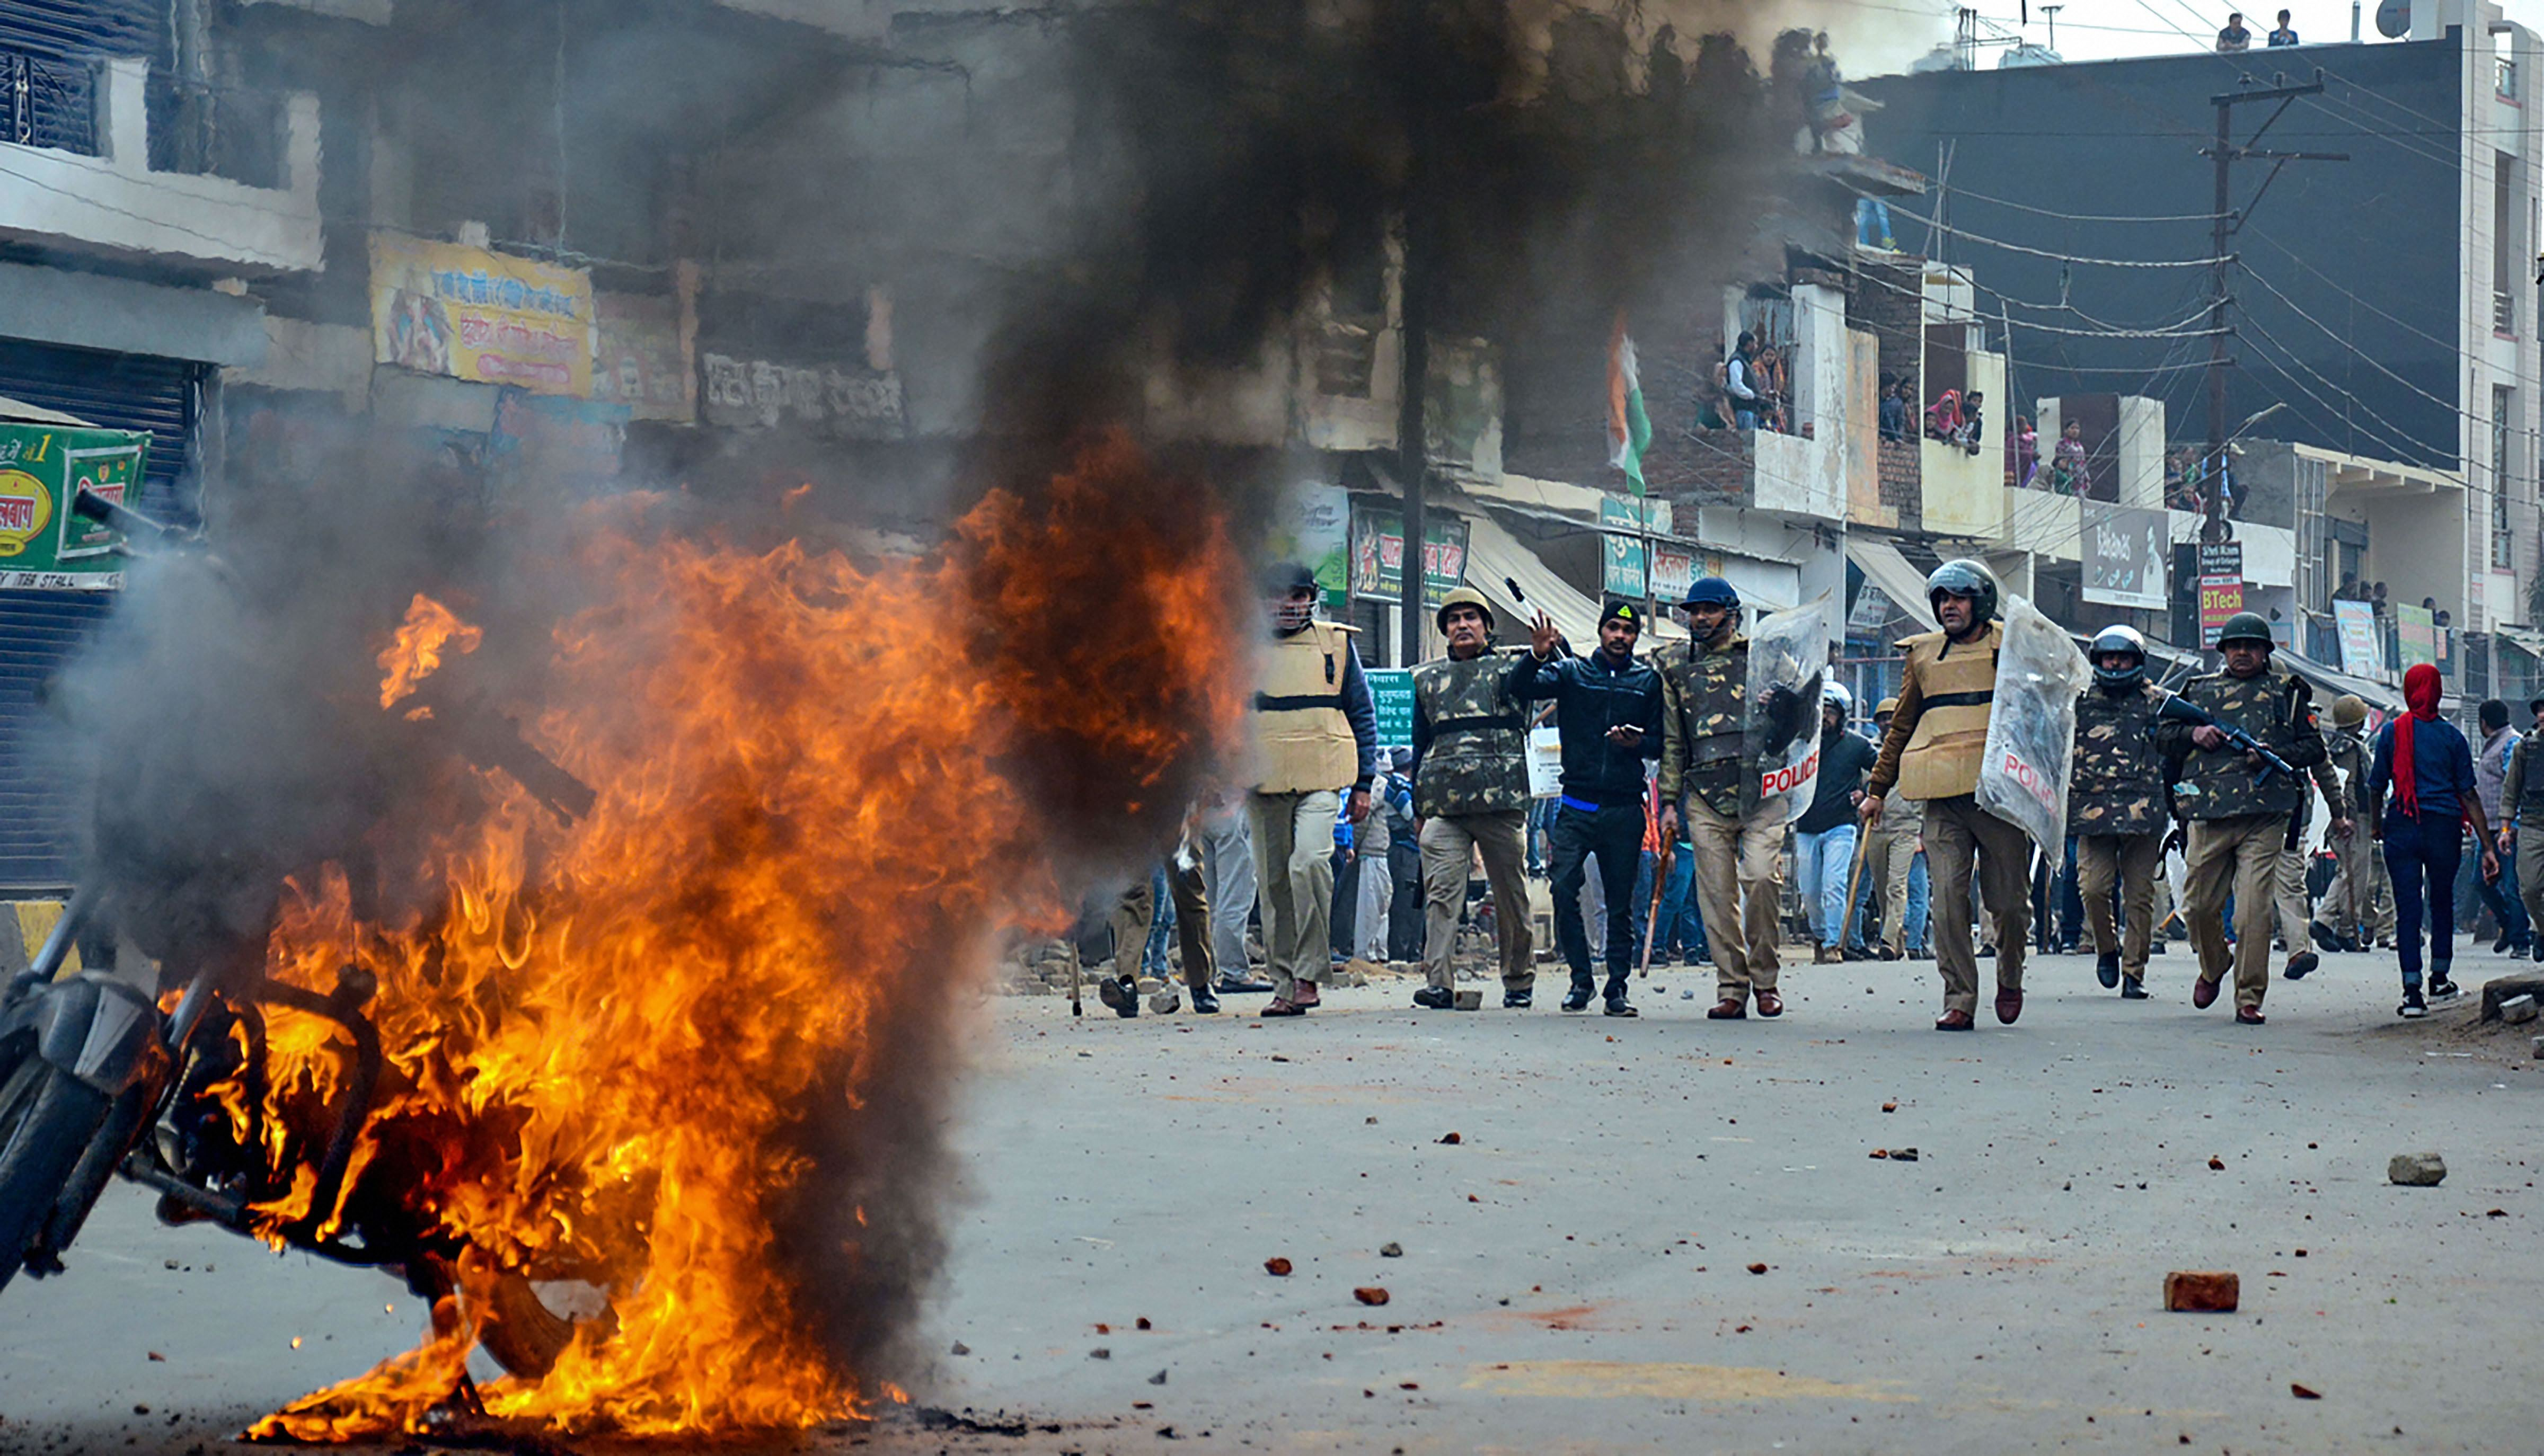 Smoke rises out of a burning vehicle during a protest against the Citizenship (Amendment) Act, in Muzaffarnagar, Friday, Dec. 20, 2019.